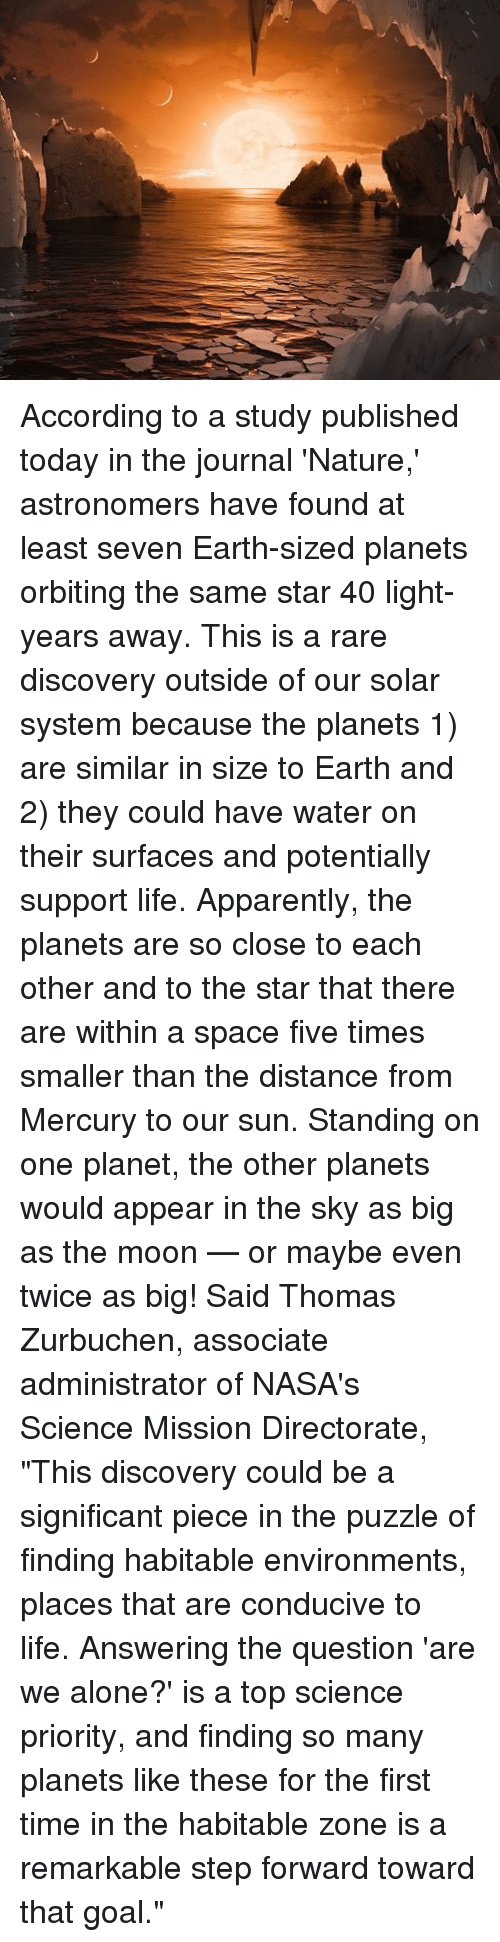 """naturalism: According to a study published today in the journal 'Nature,' astronomers have found at least seven Earth-sized planets orbiting the same star 40 light-years away. This is a rare discovery outside of our solar system because the planets 1) are similar in size to Earth and 2) they could have water on their surfaces and potentially support life. Apparently, the planets are so close to each other and to the star that there are within a space five times smaller than the distance from Mercury to our sun. Standing on one planet, the other planets would appear in the sky as big as the moon — or maybe even twice as big! Said Thomas Zurbuchen, associate administrator of NASA's Science Mission Directorate, """"This discovery could be a significant piece in the puzzle of finding habitable environments, places that are conducive to life. Answering the question 'are we alone?' is a top science priority, and finding so many planets like these for the first time in the habitable zone is a remarkable step forward toward that goal."""""""